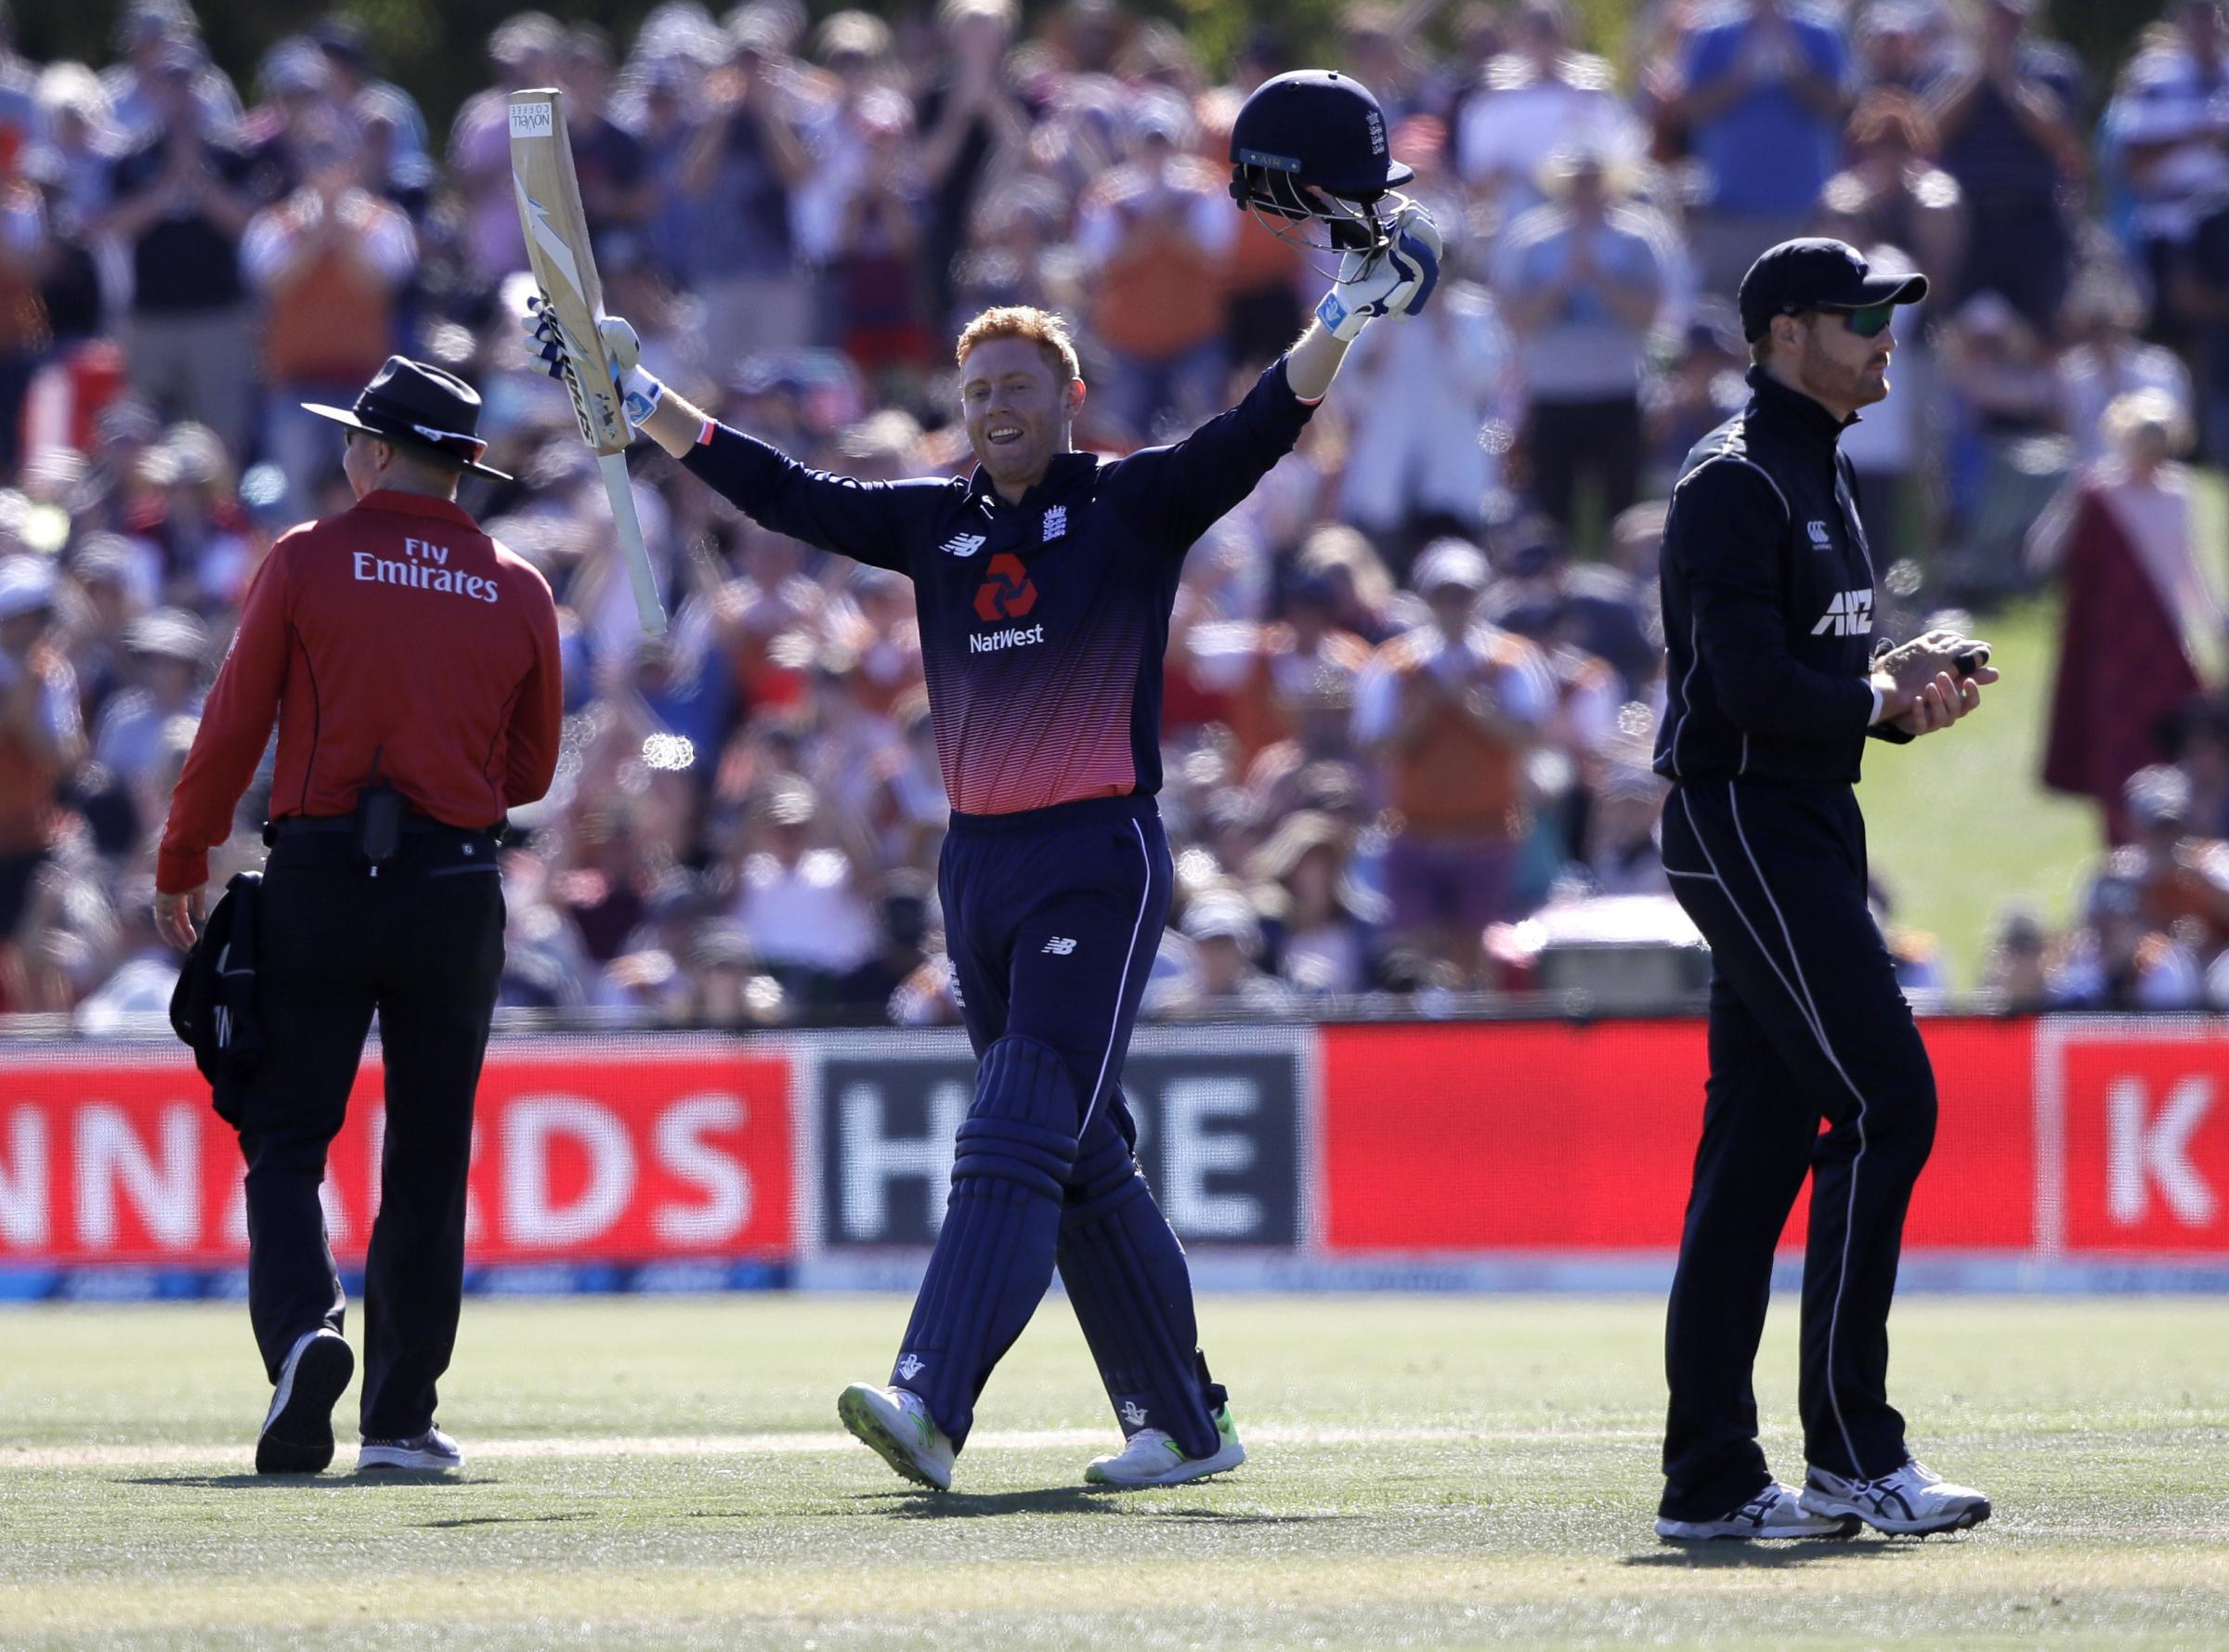 Jonny Bairstow celebrates after completing a 58-ball century for England in their series decider against New Zealand in Christchurch – Picture: AP Photo/Mark Baker